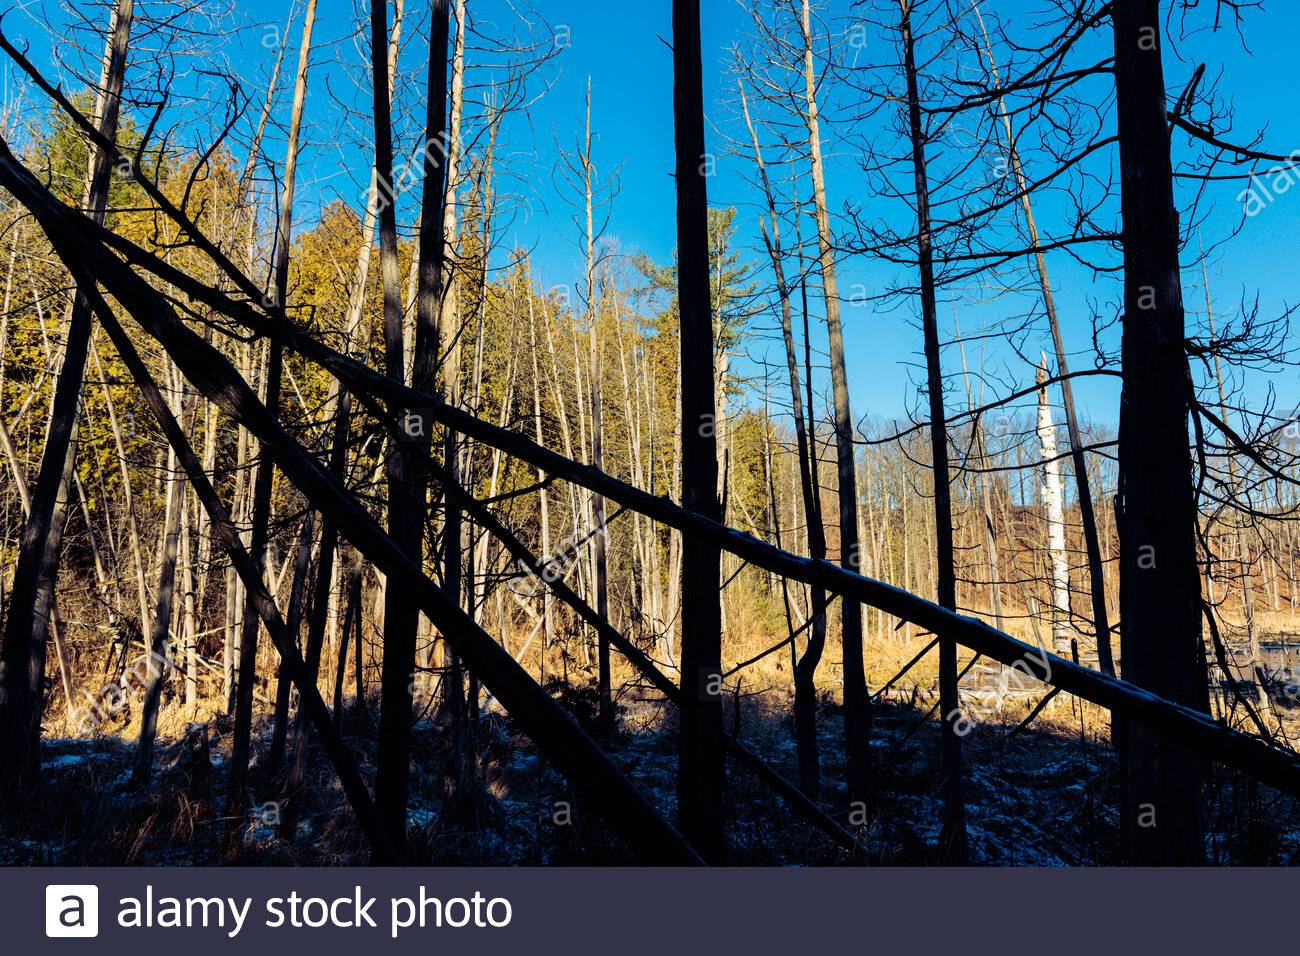 deadfall-fallen-tangled-mass-of-trees-in